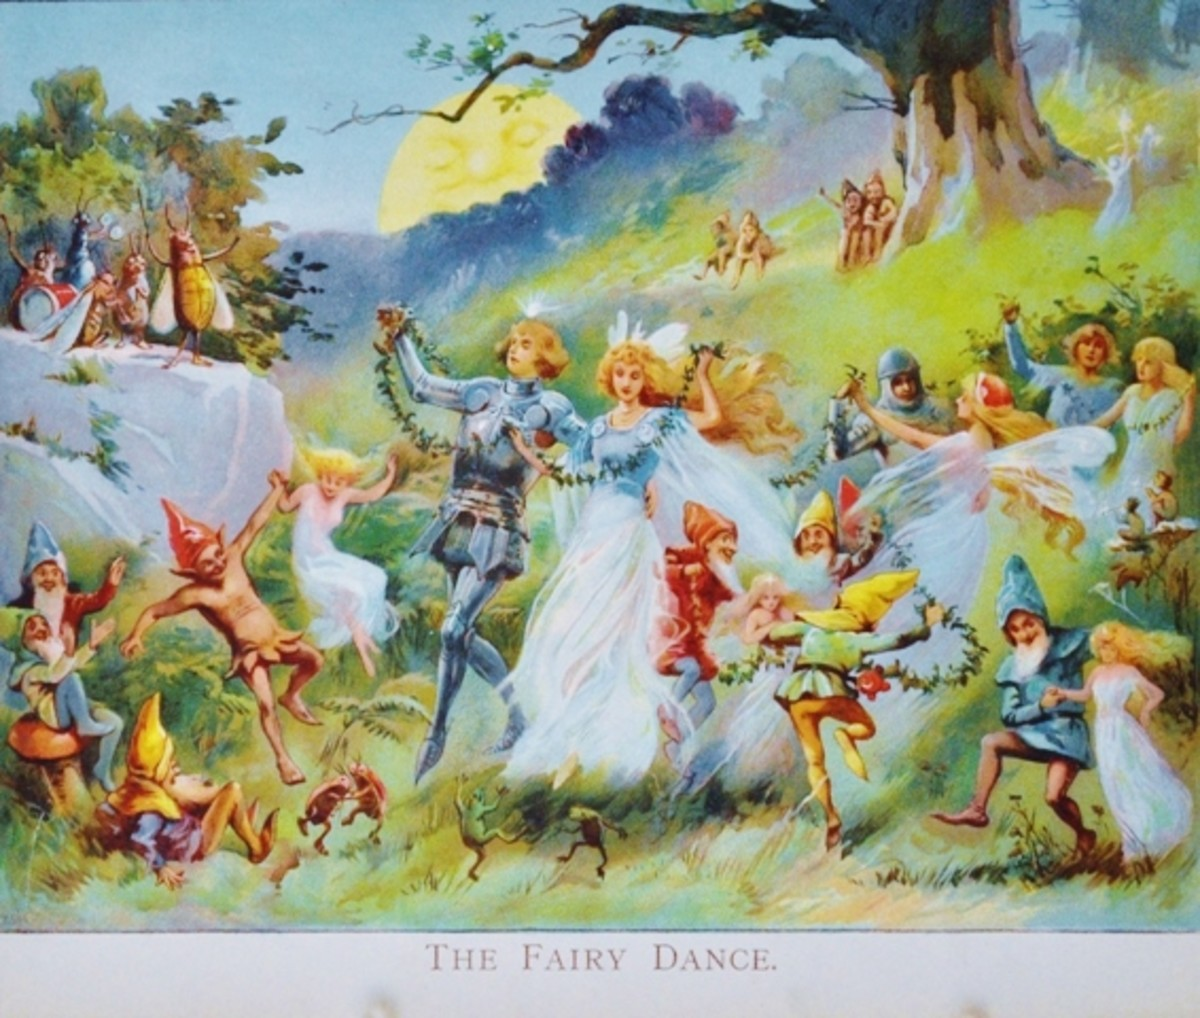 Frolick with fairies